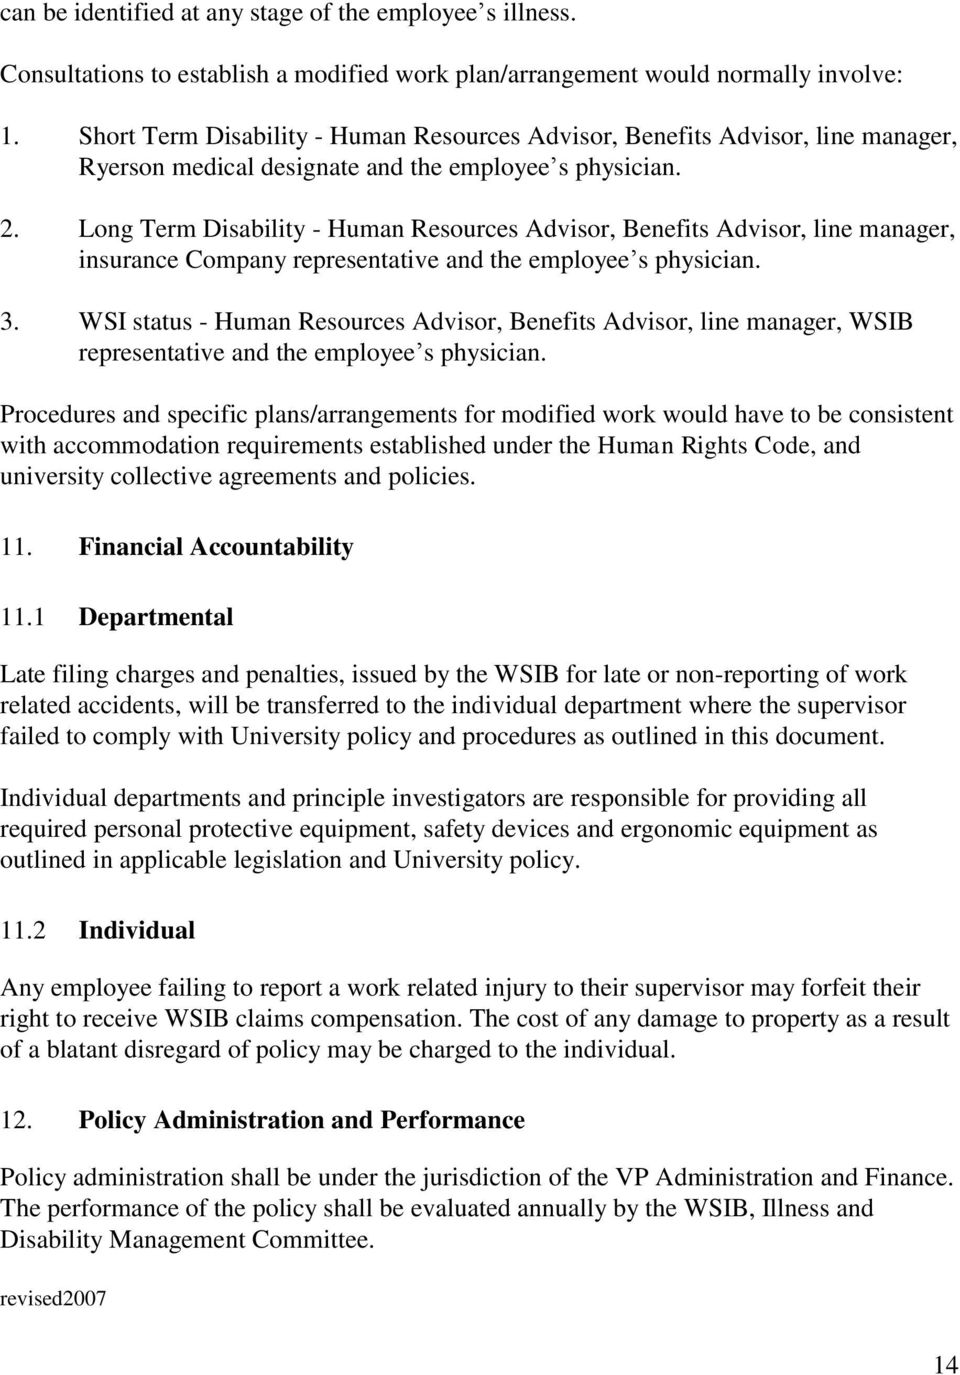 Long Term Disability - Human Resources Advisor, Benefits Advisor, line manager, insurance Company representative and the employee s physician. 3.